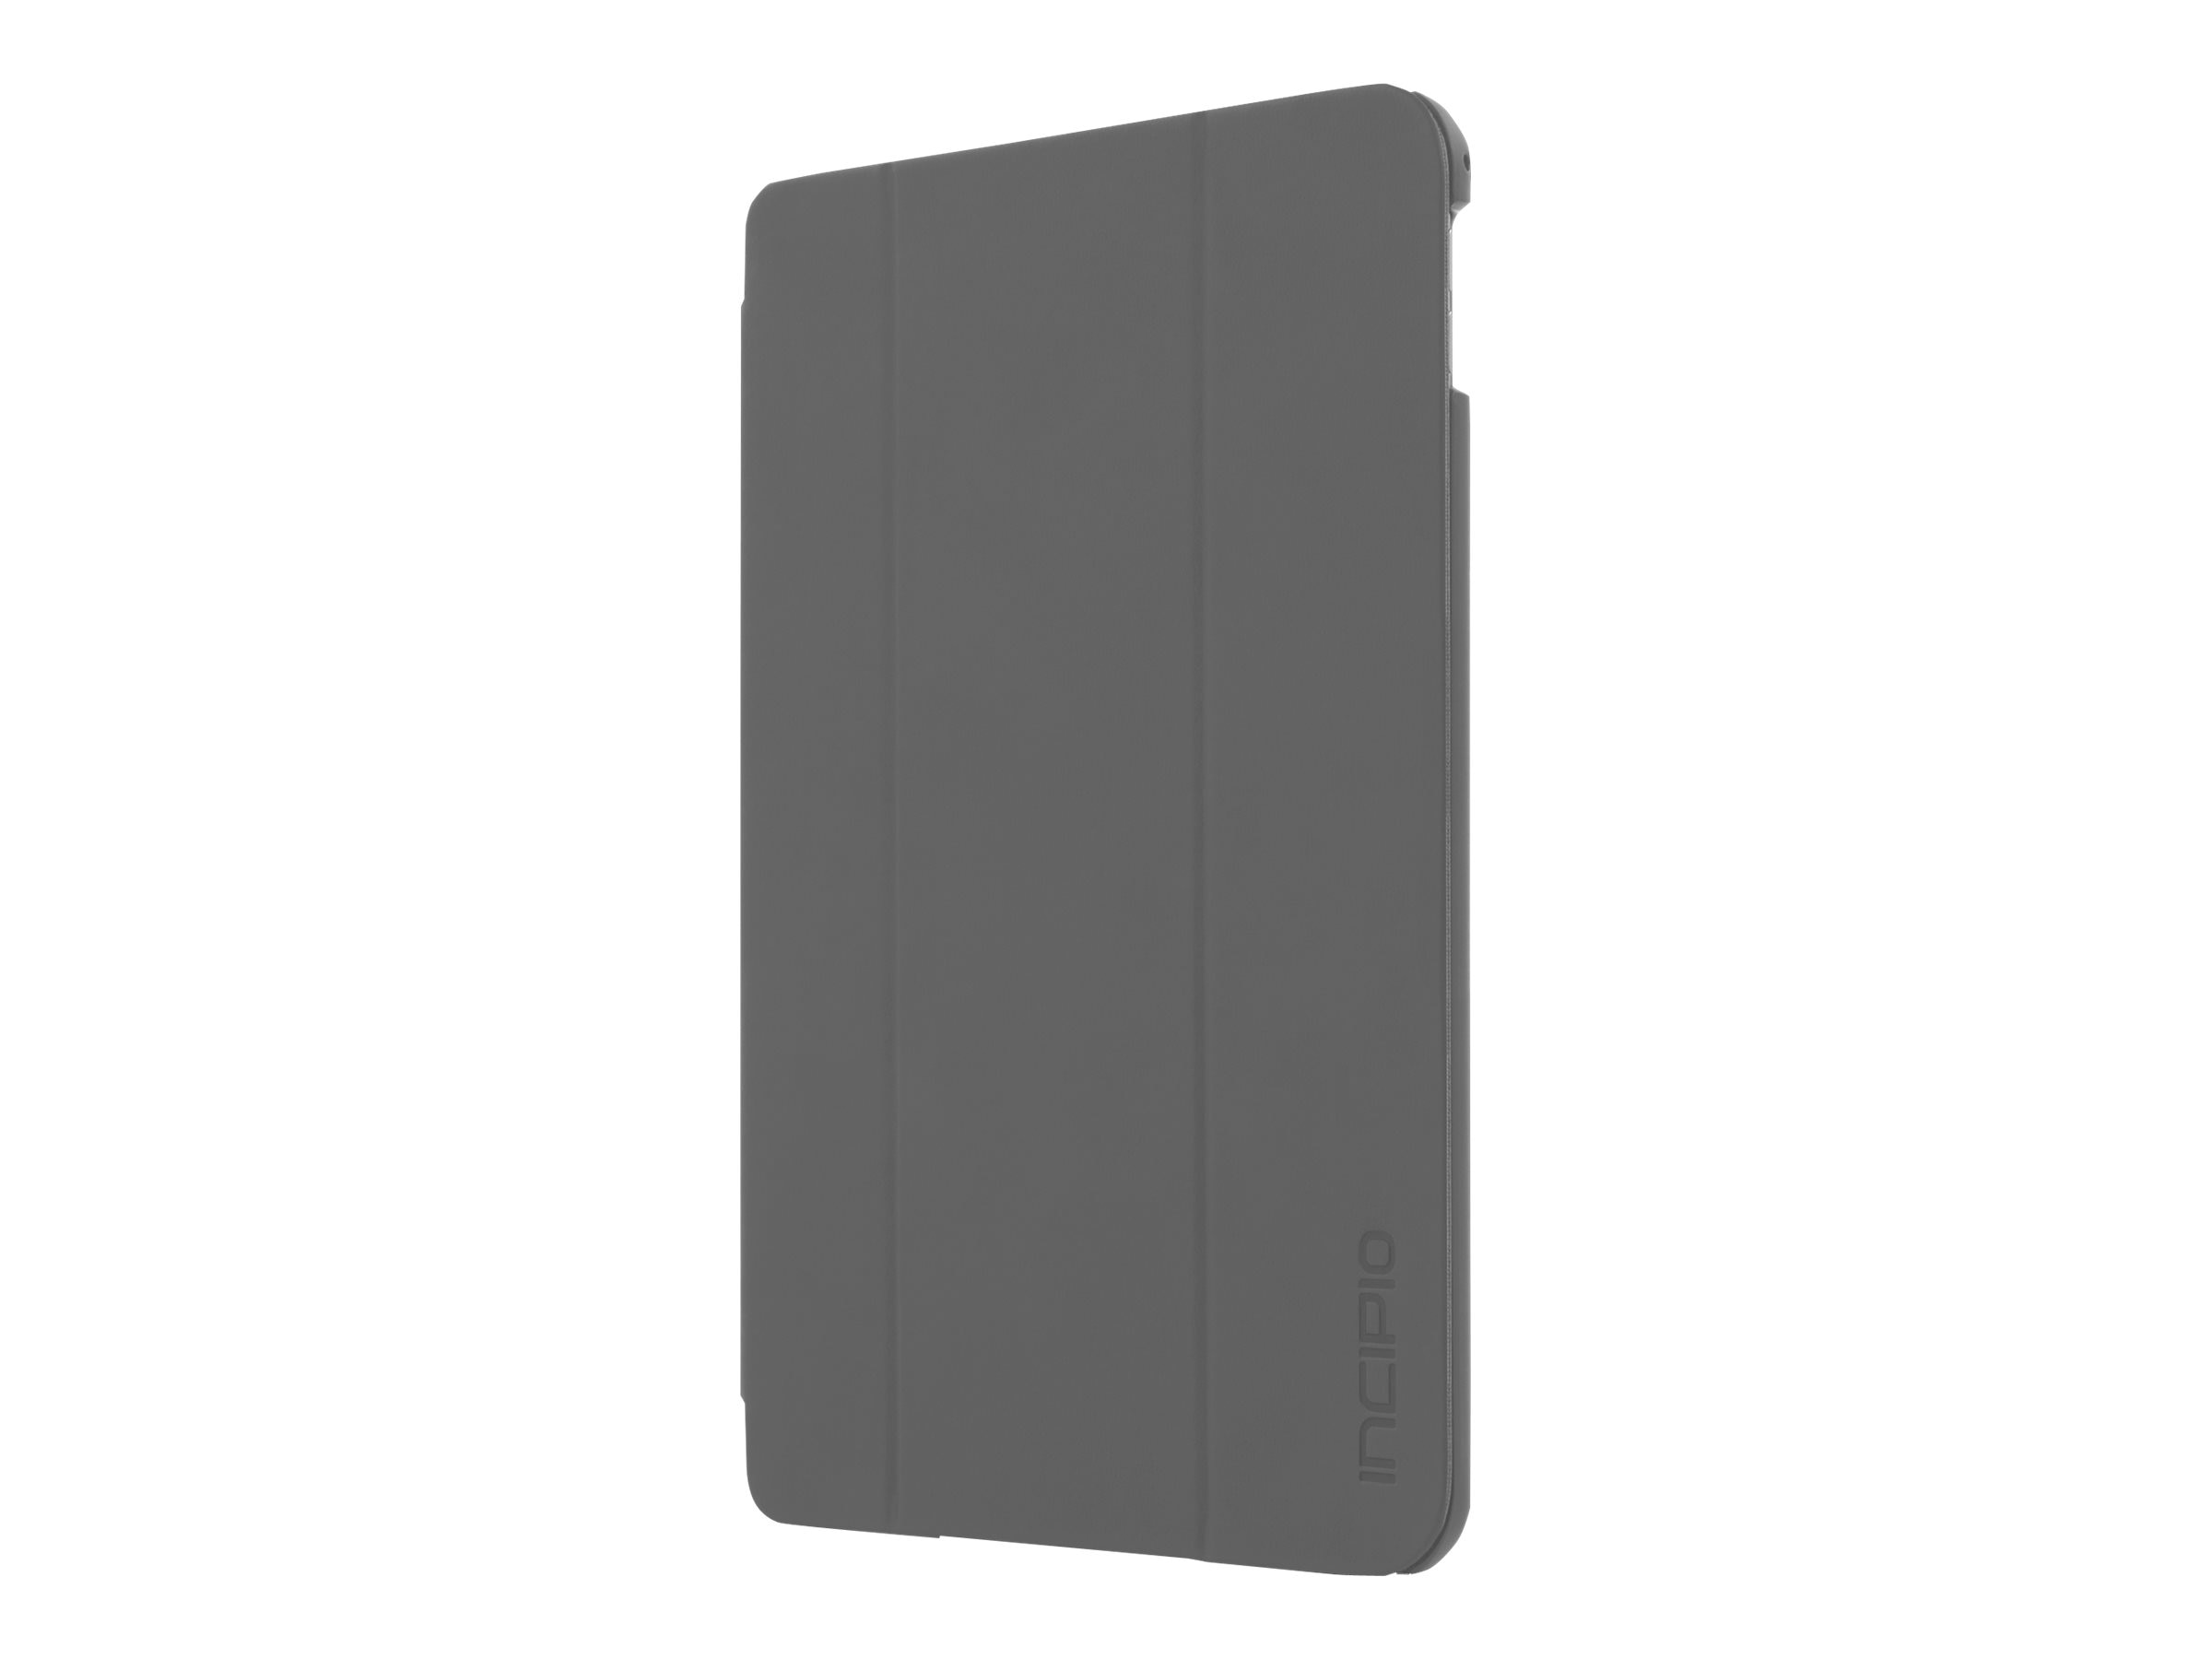 Incipio Tuxen Folio Case for iPad Air 2, Charcoal, IPD-355-CHL, 31216200, Carrying Cases - Tablets & eReaders